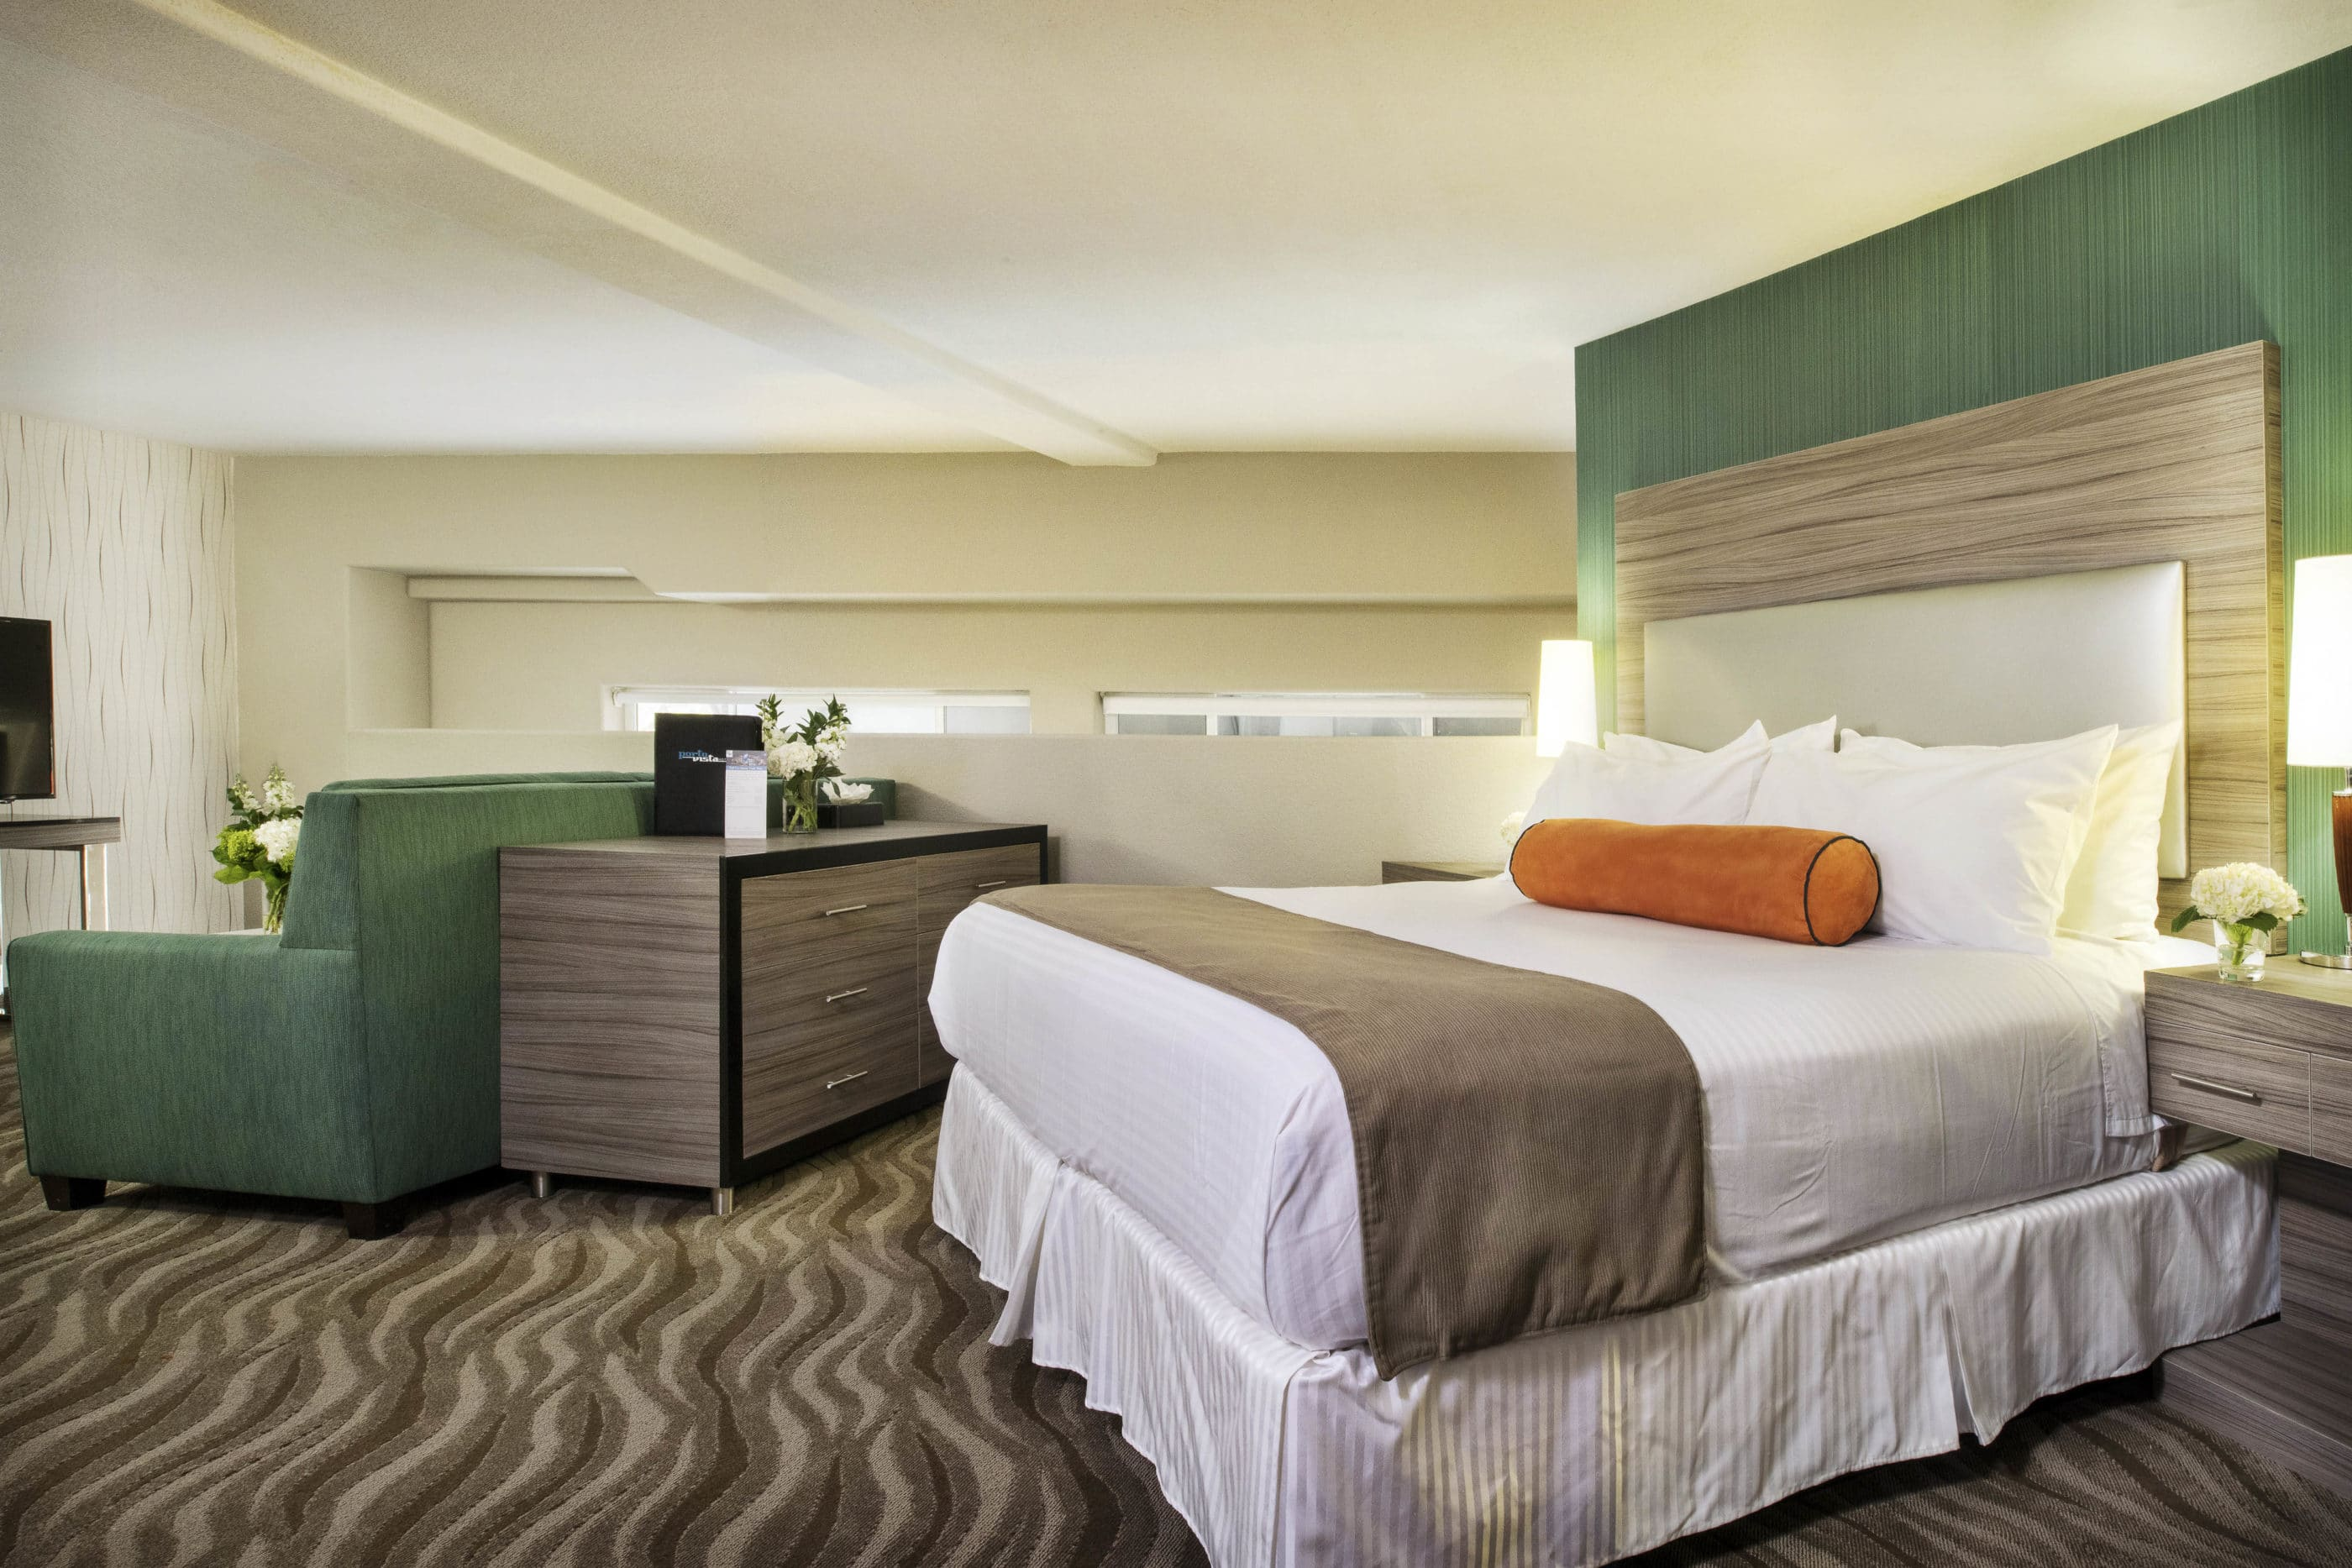 A room interior with neutral colors accented by green and orange at Porto Vista Hotel near San Diego Zoo.